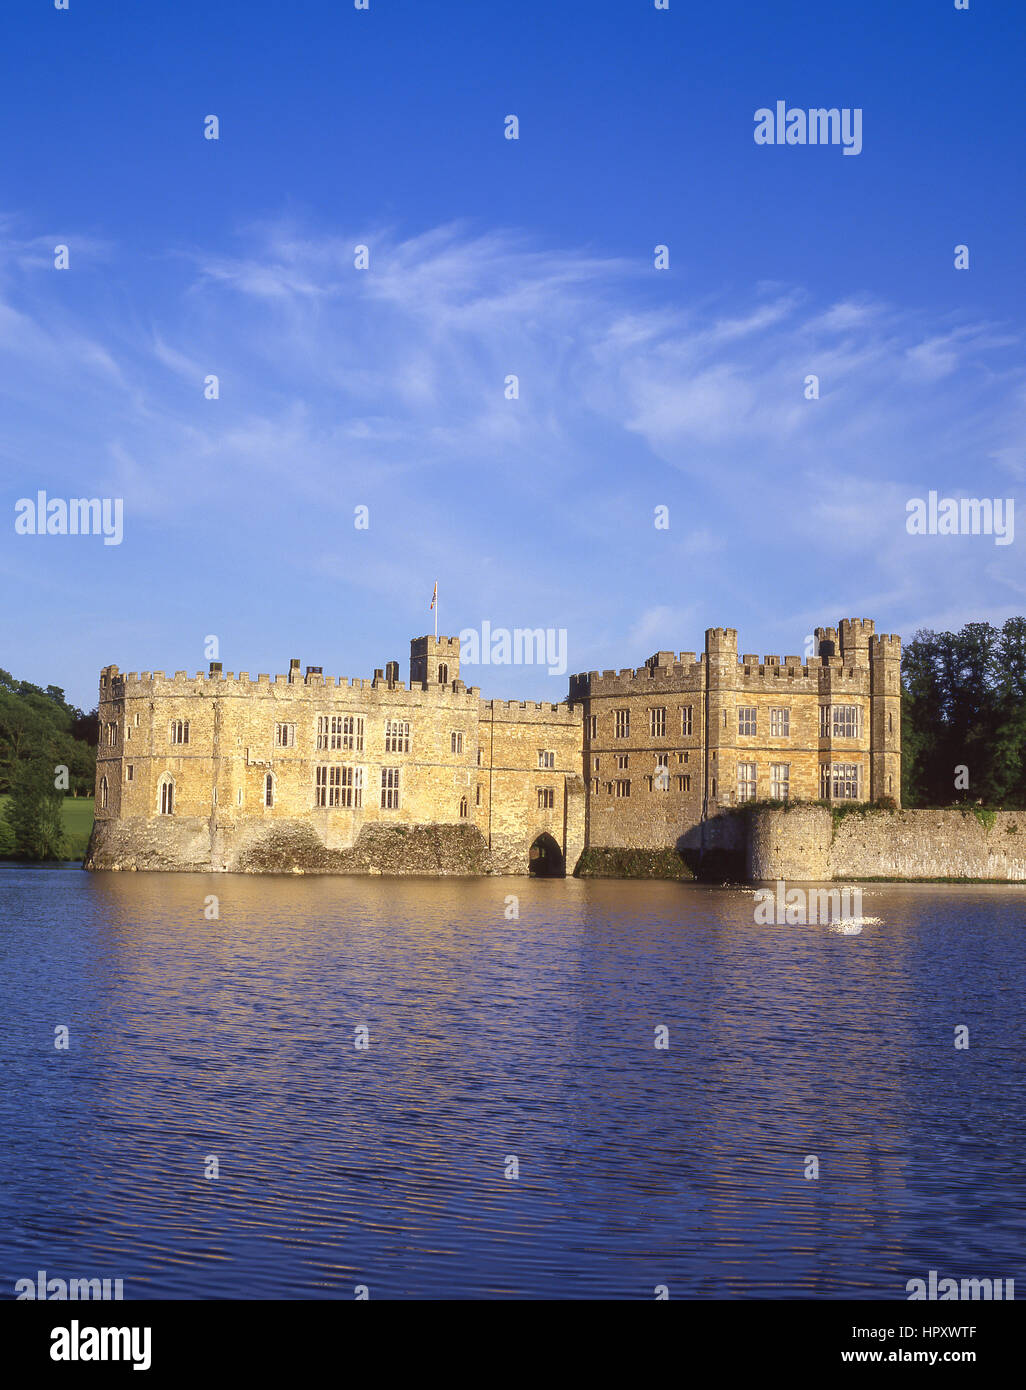 View of Leeds Castle across moat, Broomfield, Kent, England, United Kingdom - Stock Image